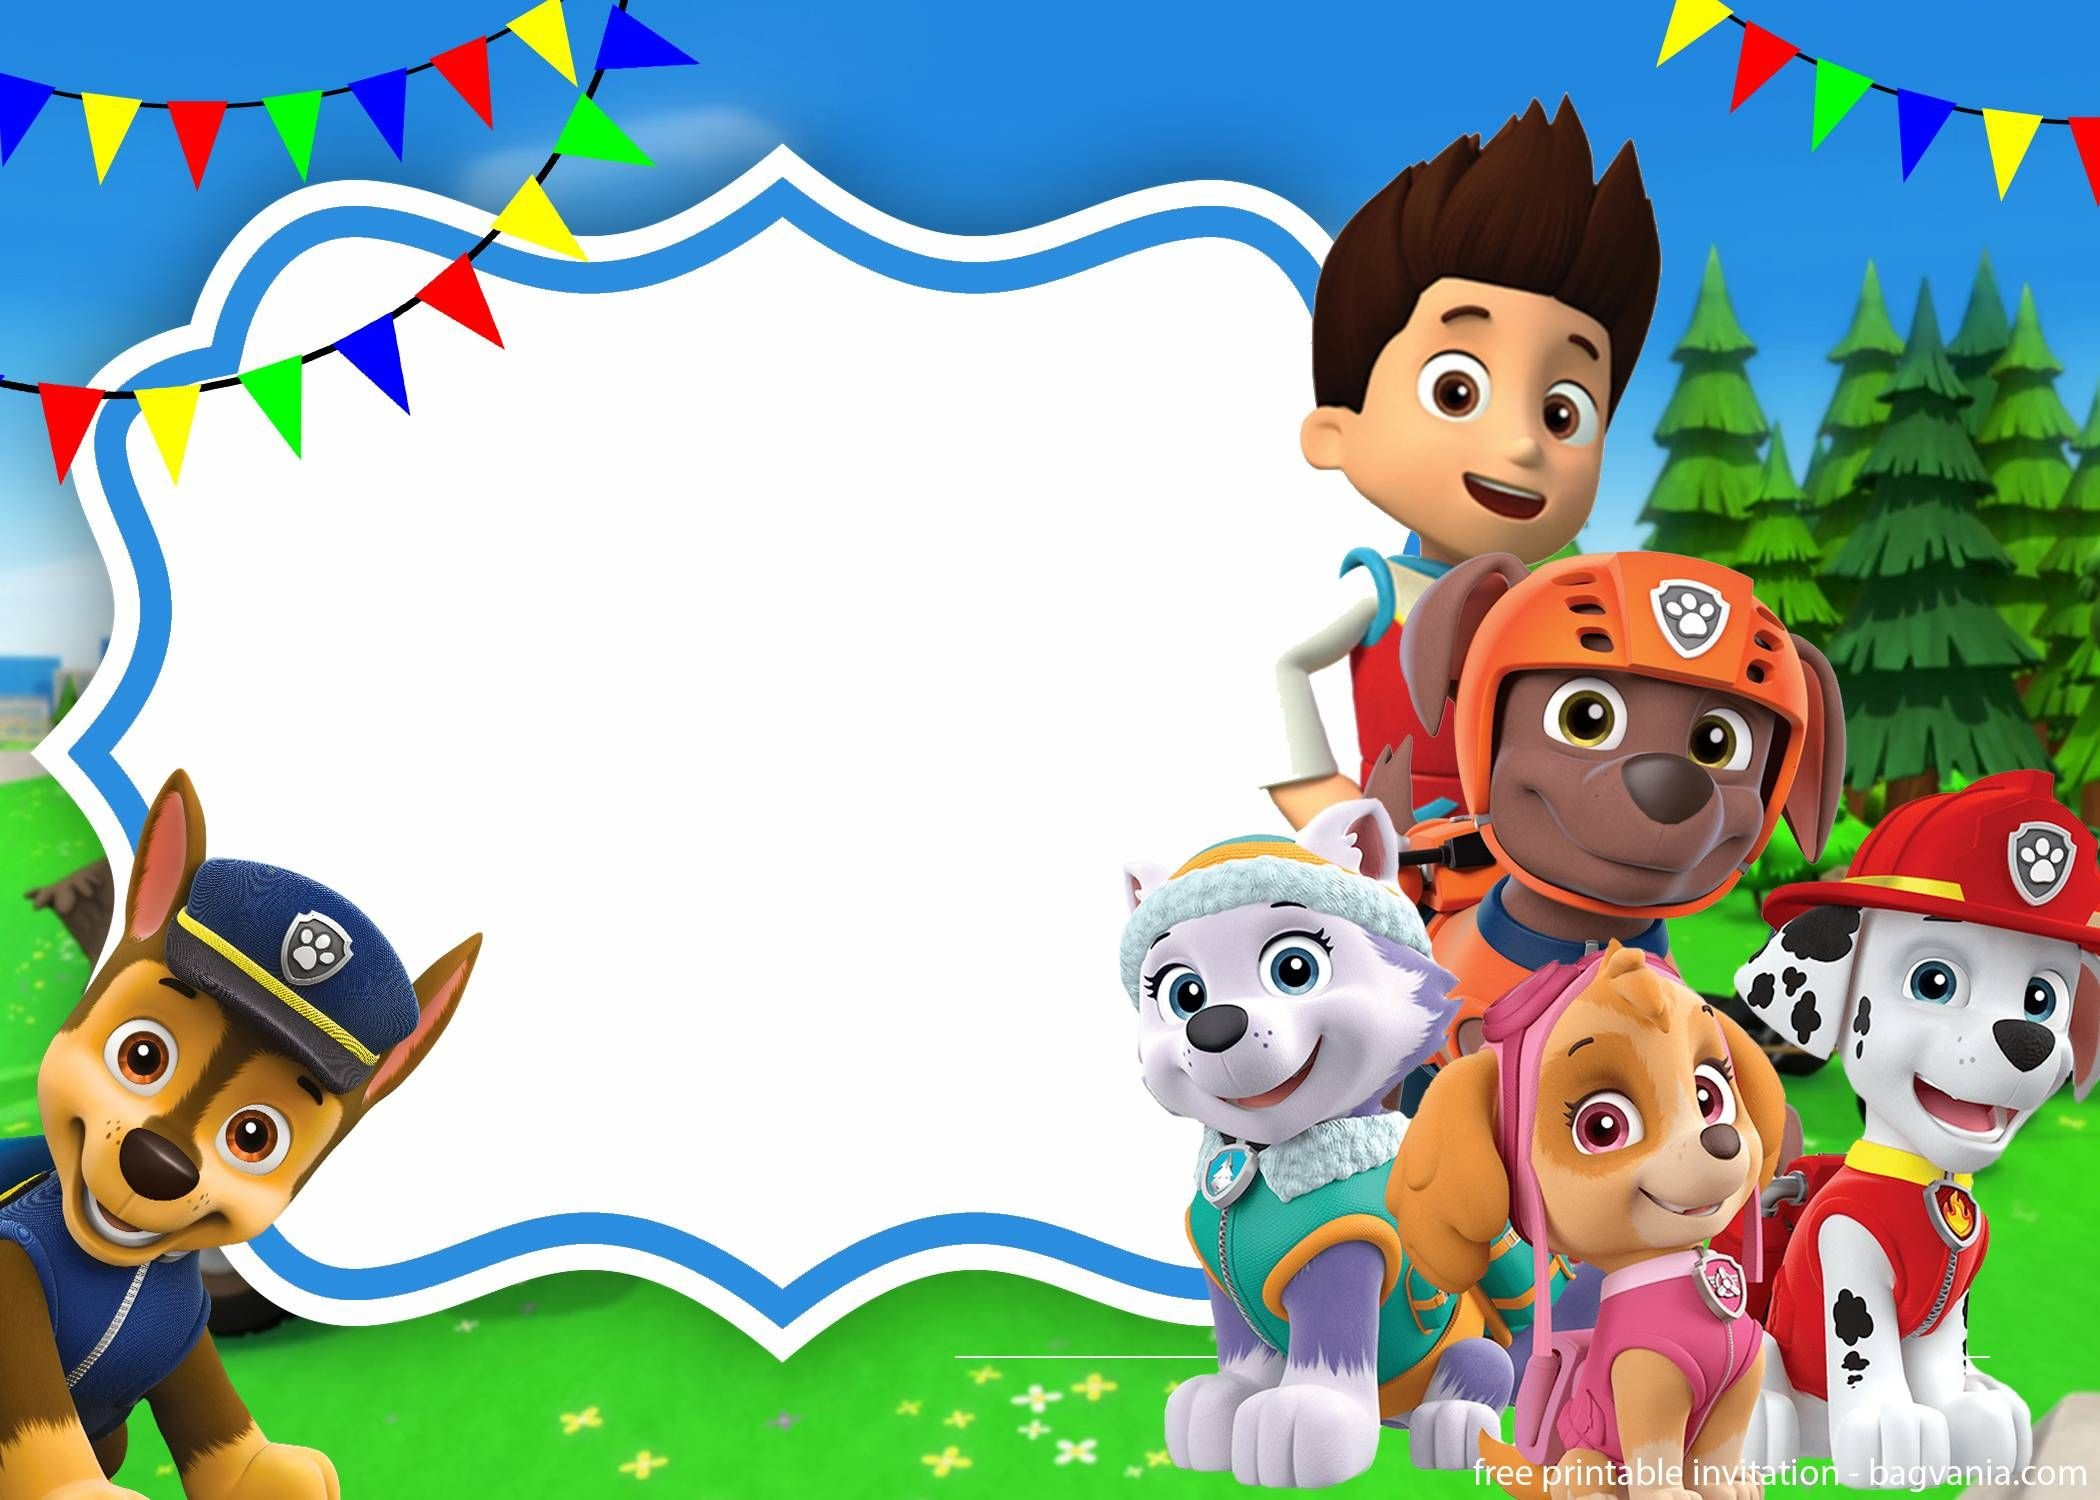 Paw Patrol Skye Invitation Template For Your Daughter's Birthday - Free Printable Paw Patrol Invitations